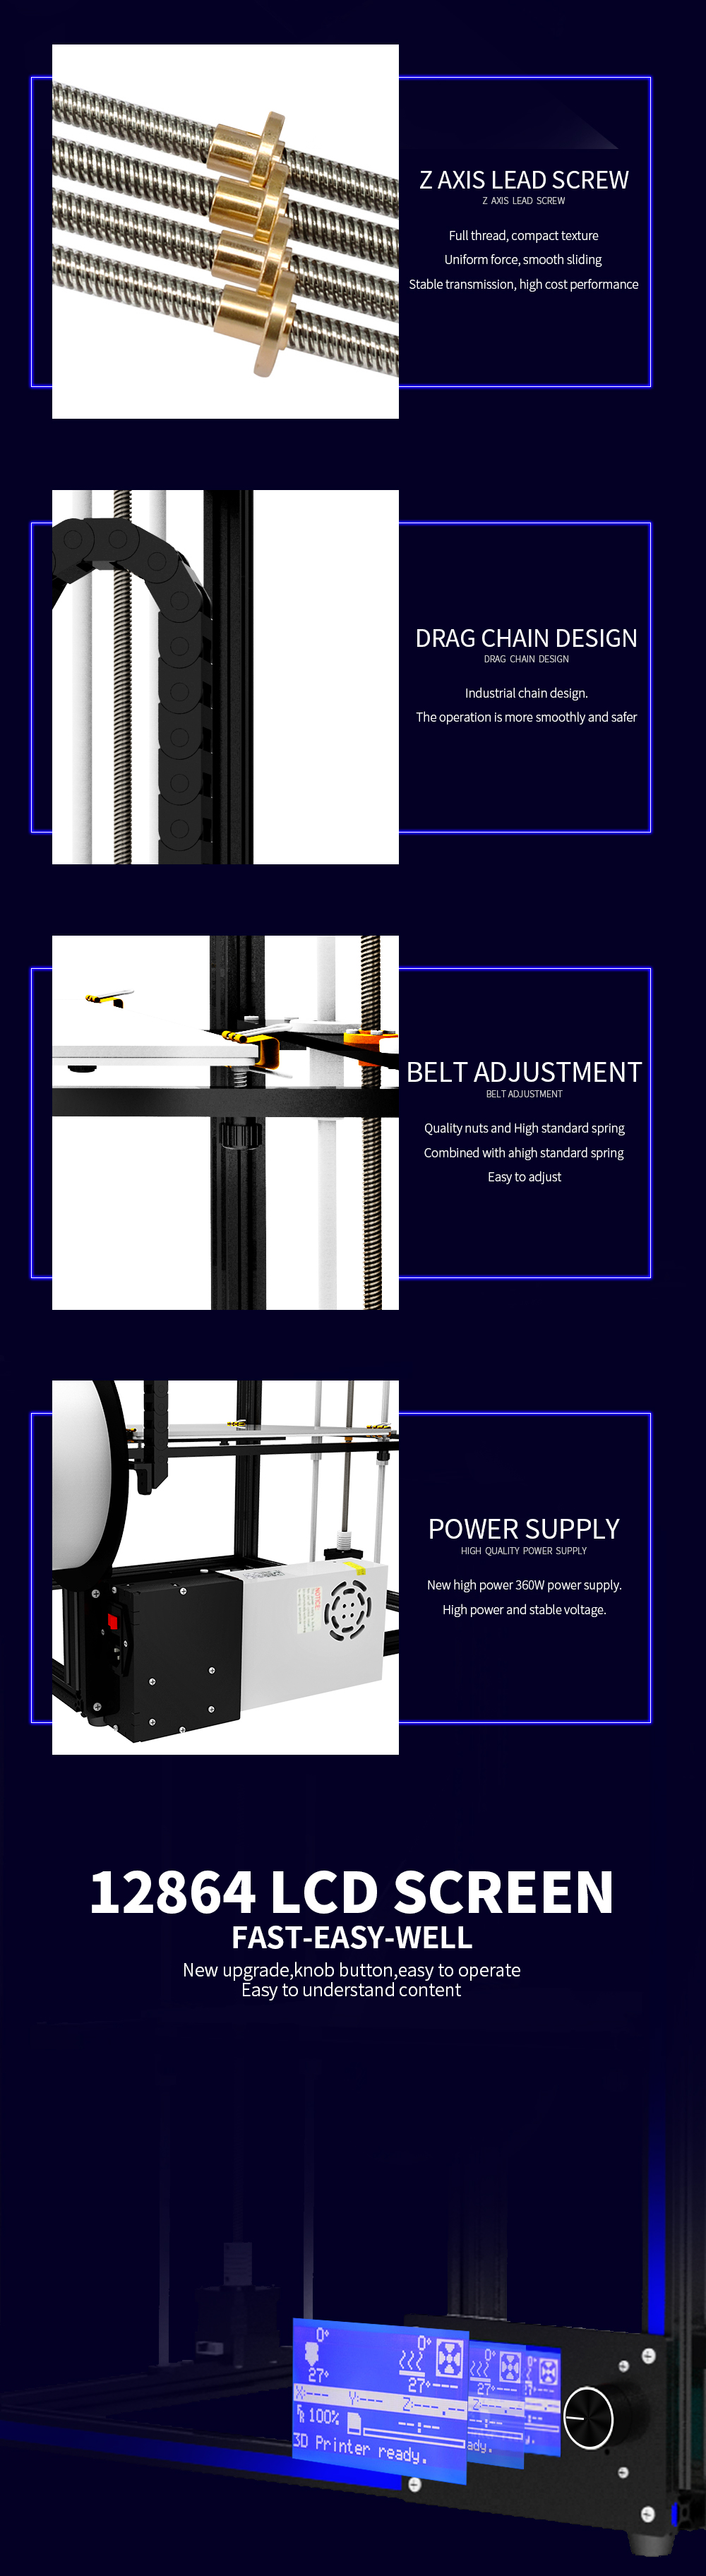 TRONXY® X5S-2E DIY Aluminium 3D Printer 330*330*400mm Printing Size Support Single/Dual/Mixed Color With Dual Z-axis Rod/Knob Button LCD Screen 8